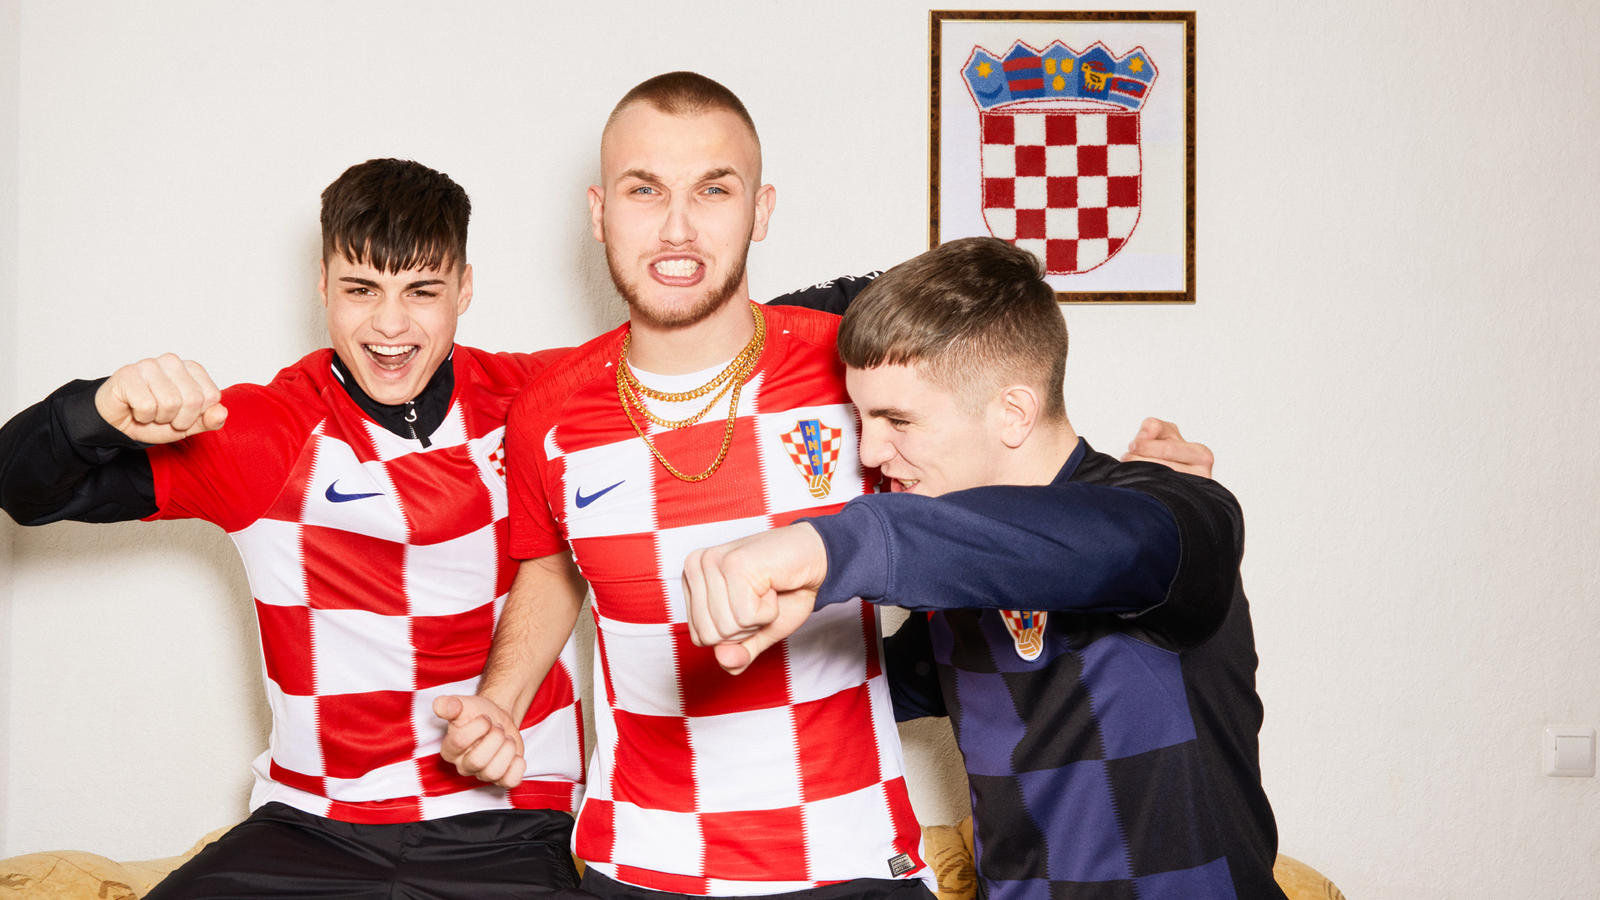 Croatia National Team Collection 0